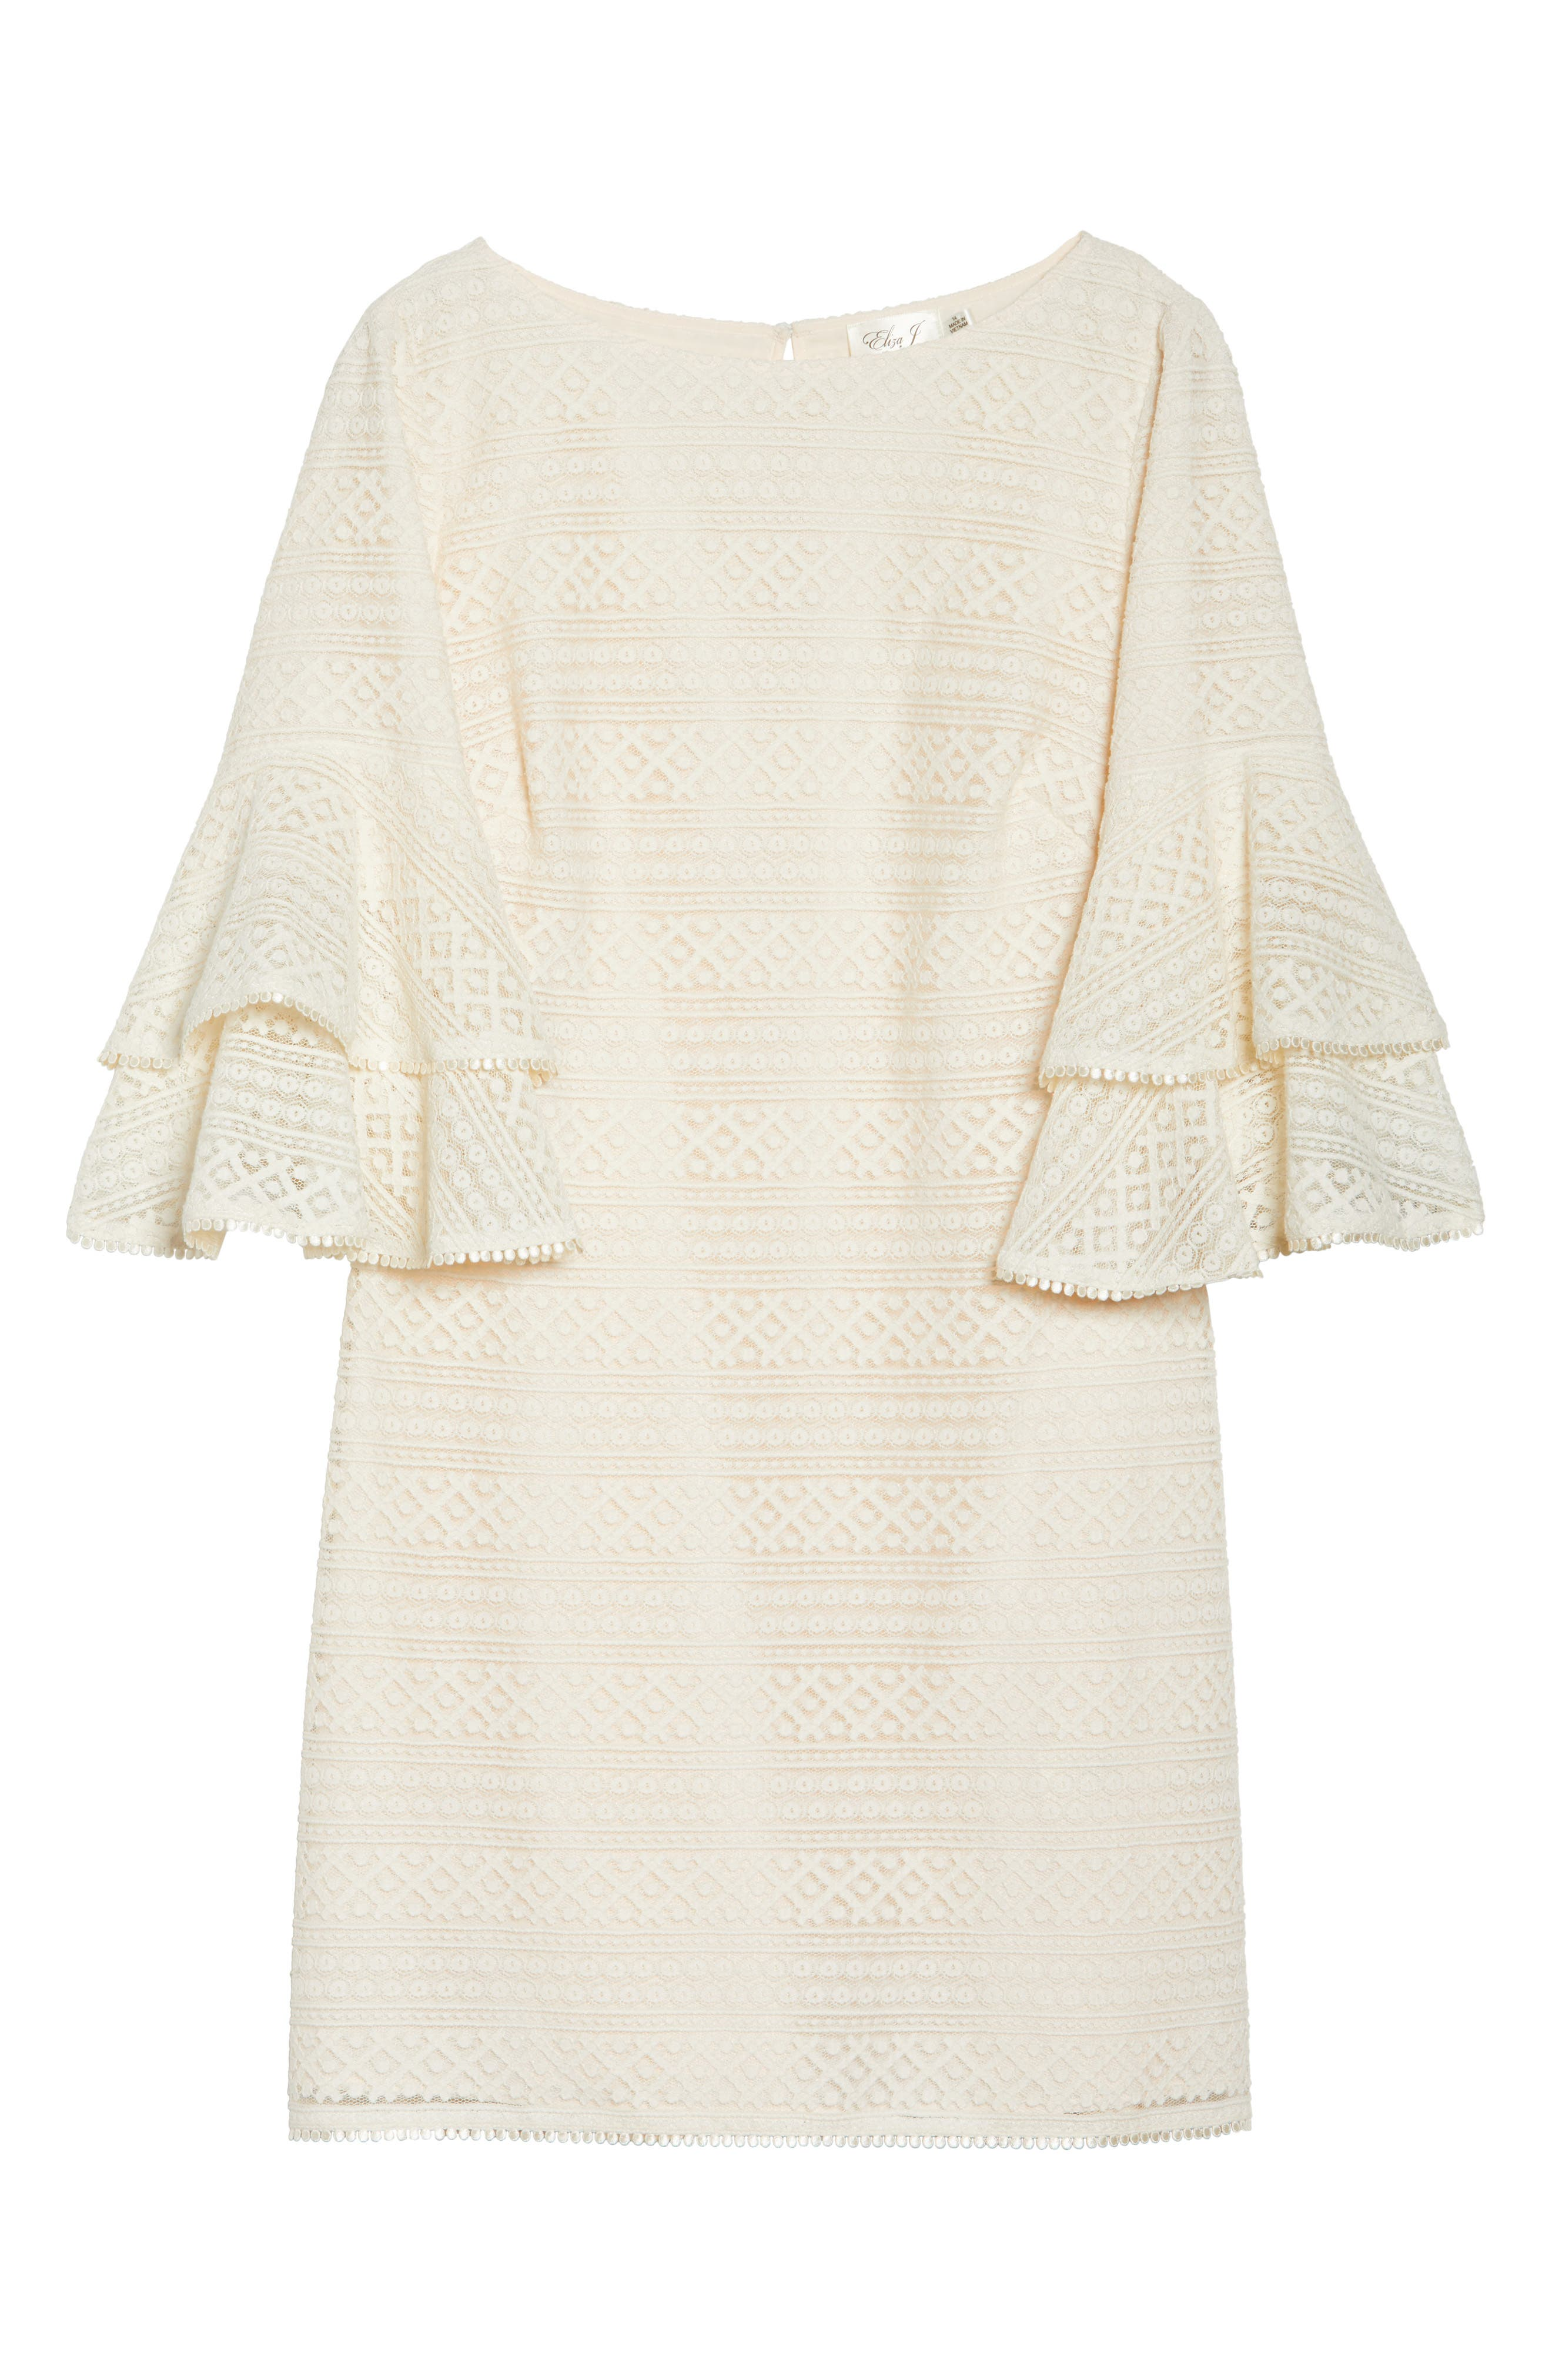 Bell Sleeve Lace Shift Dress,                             Alternate thumbnail 6, color,                             Ivory